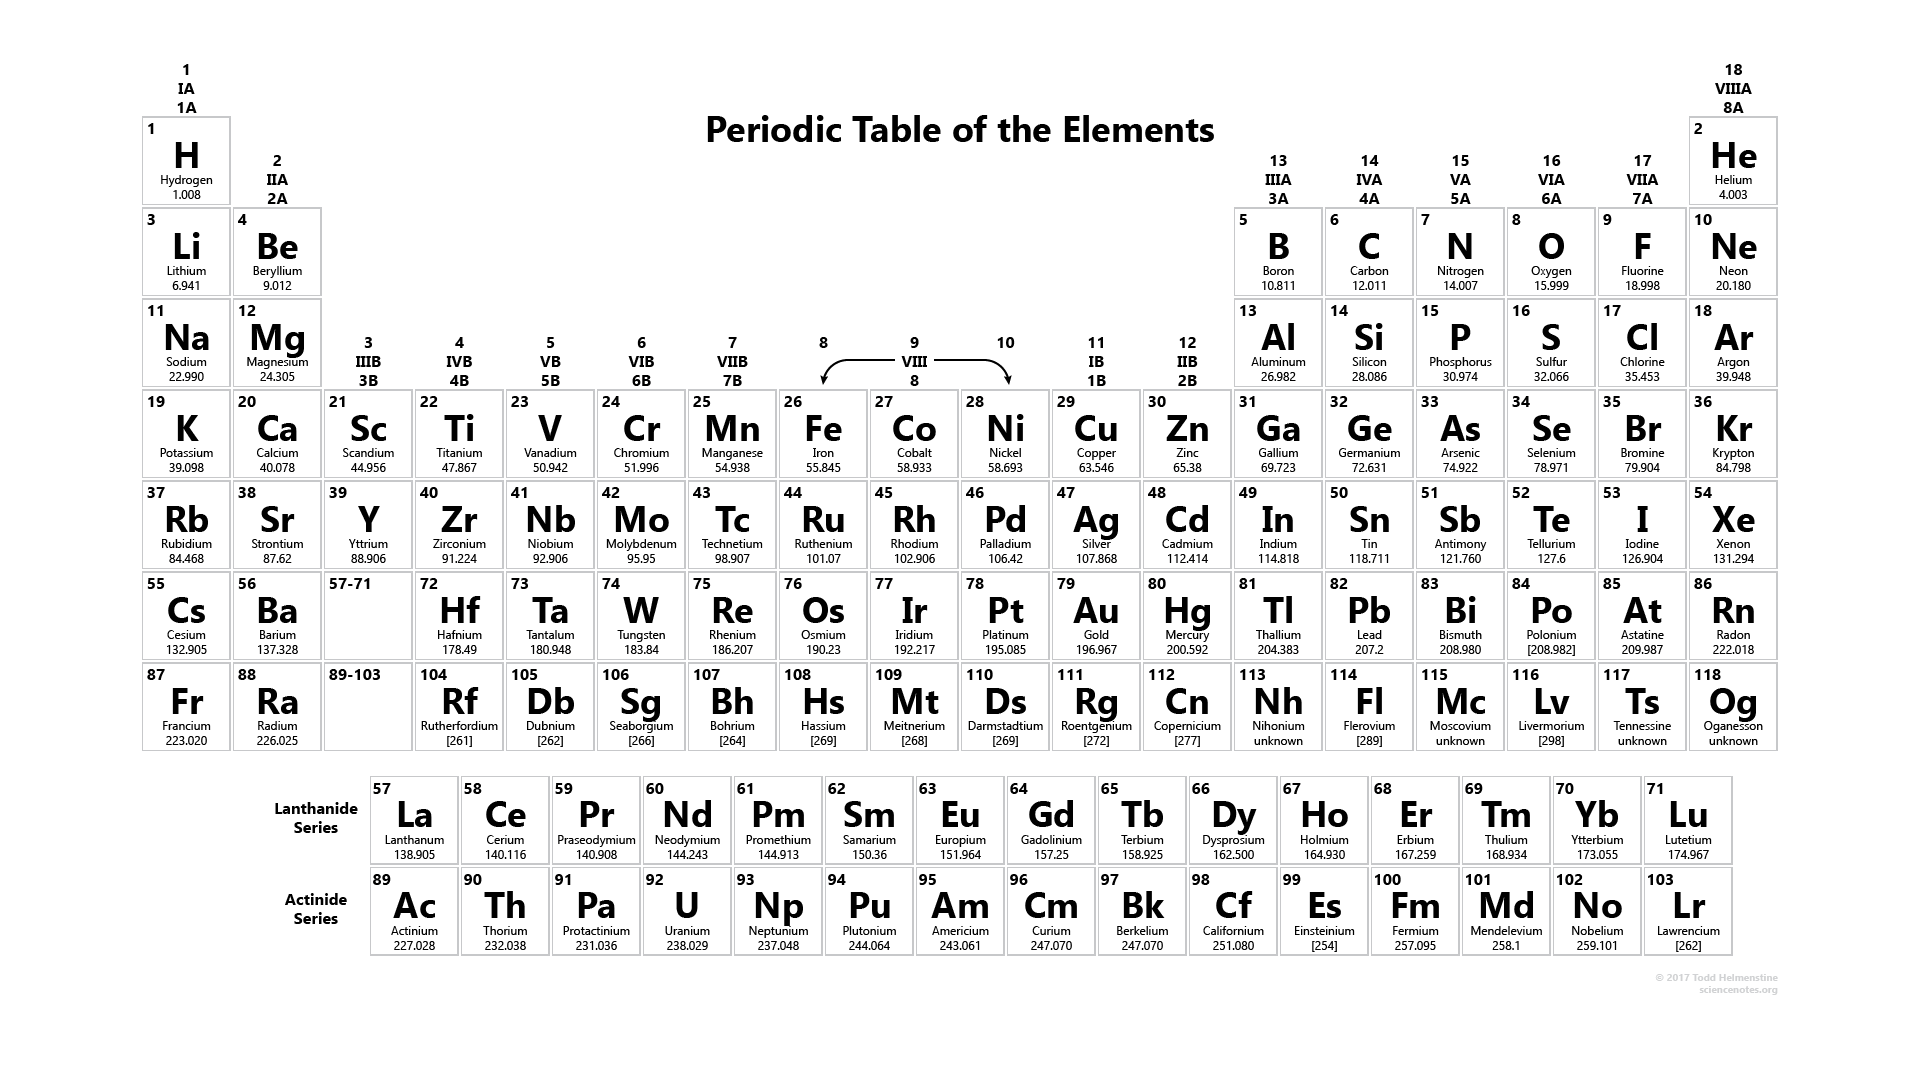 This is the black and white periodic table 2017 edition